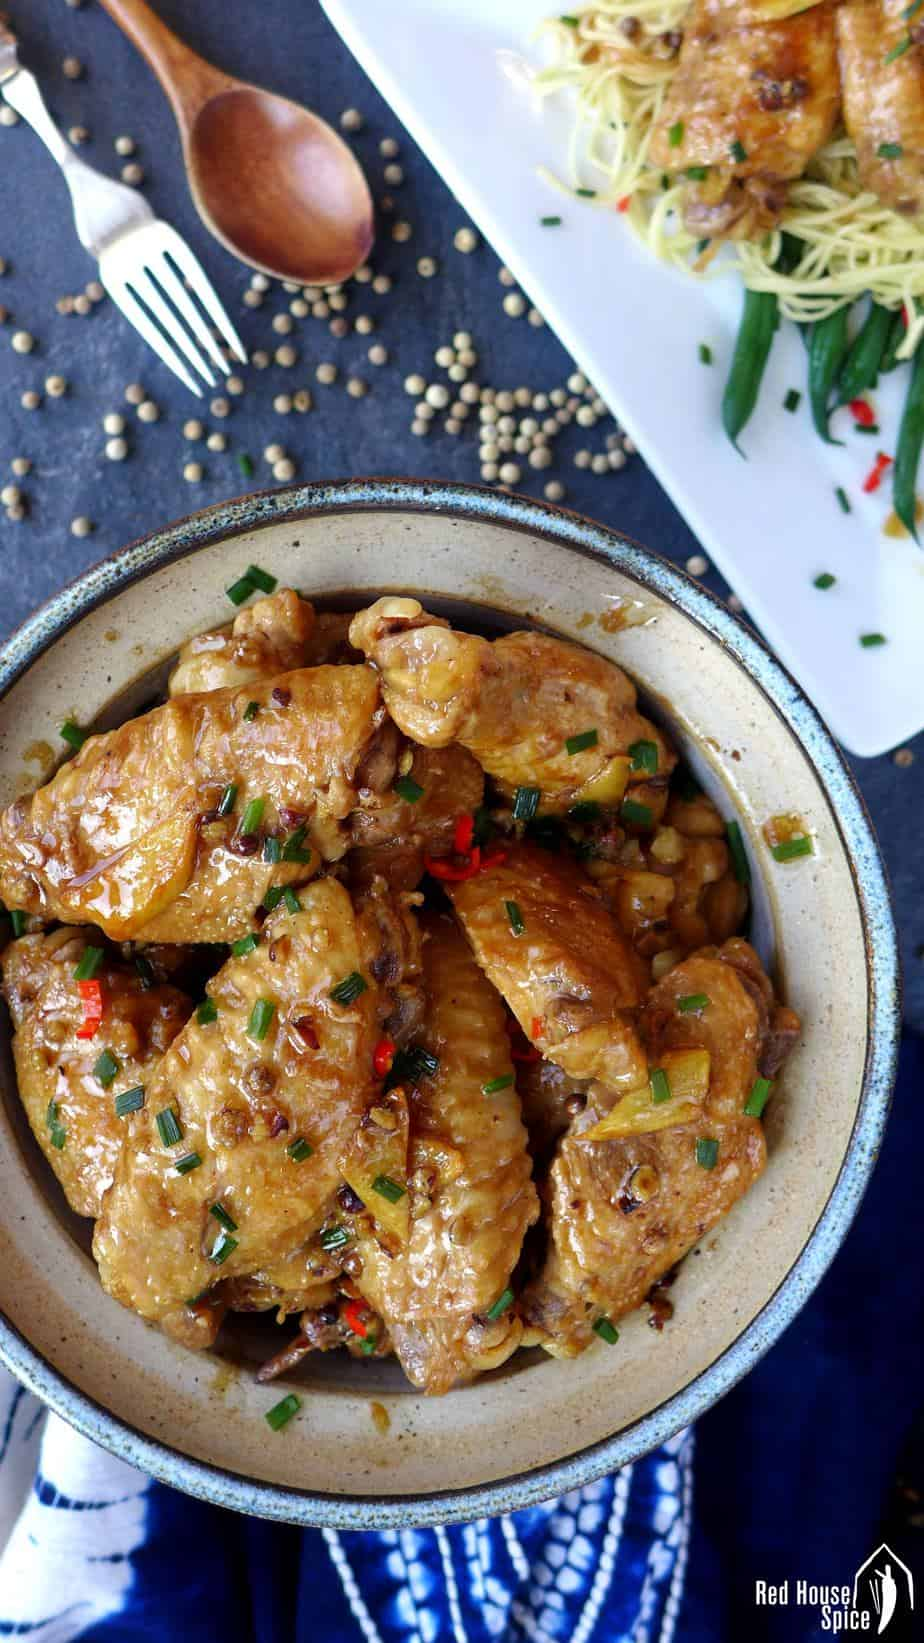 Chicken wings braised with white peppercorns